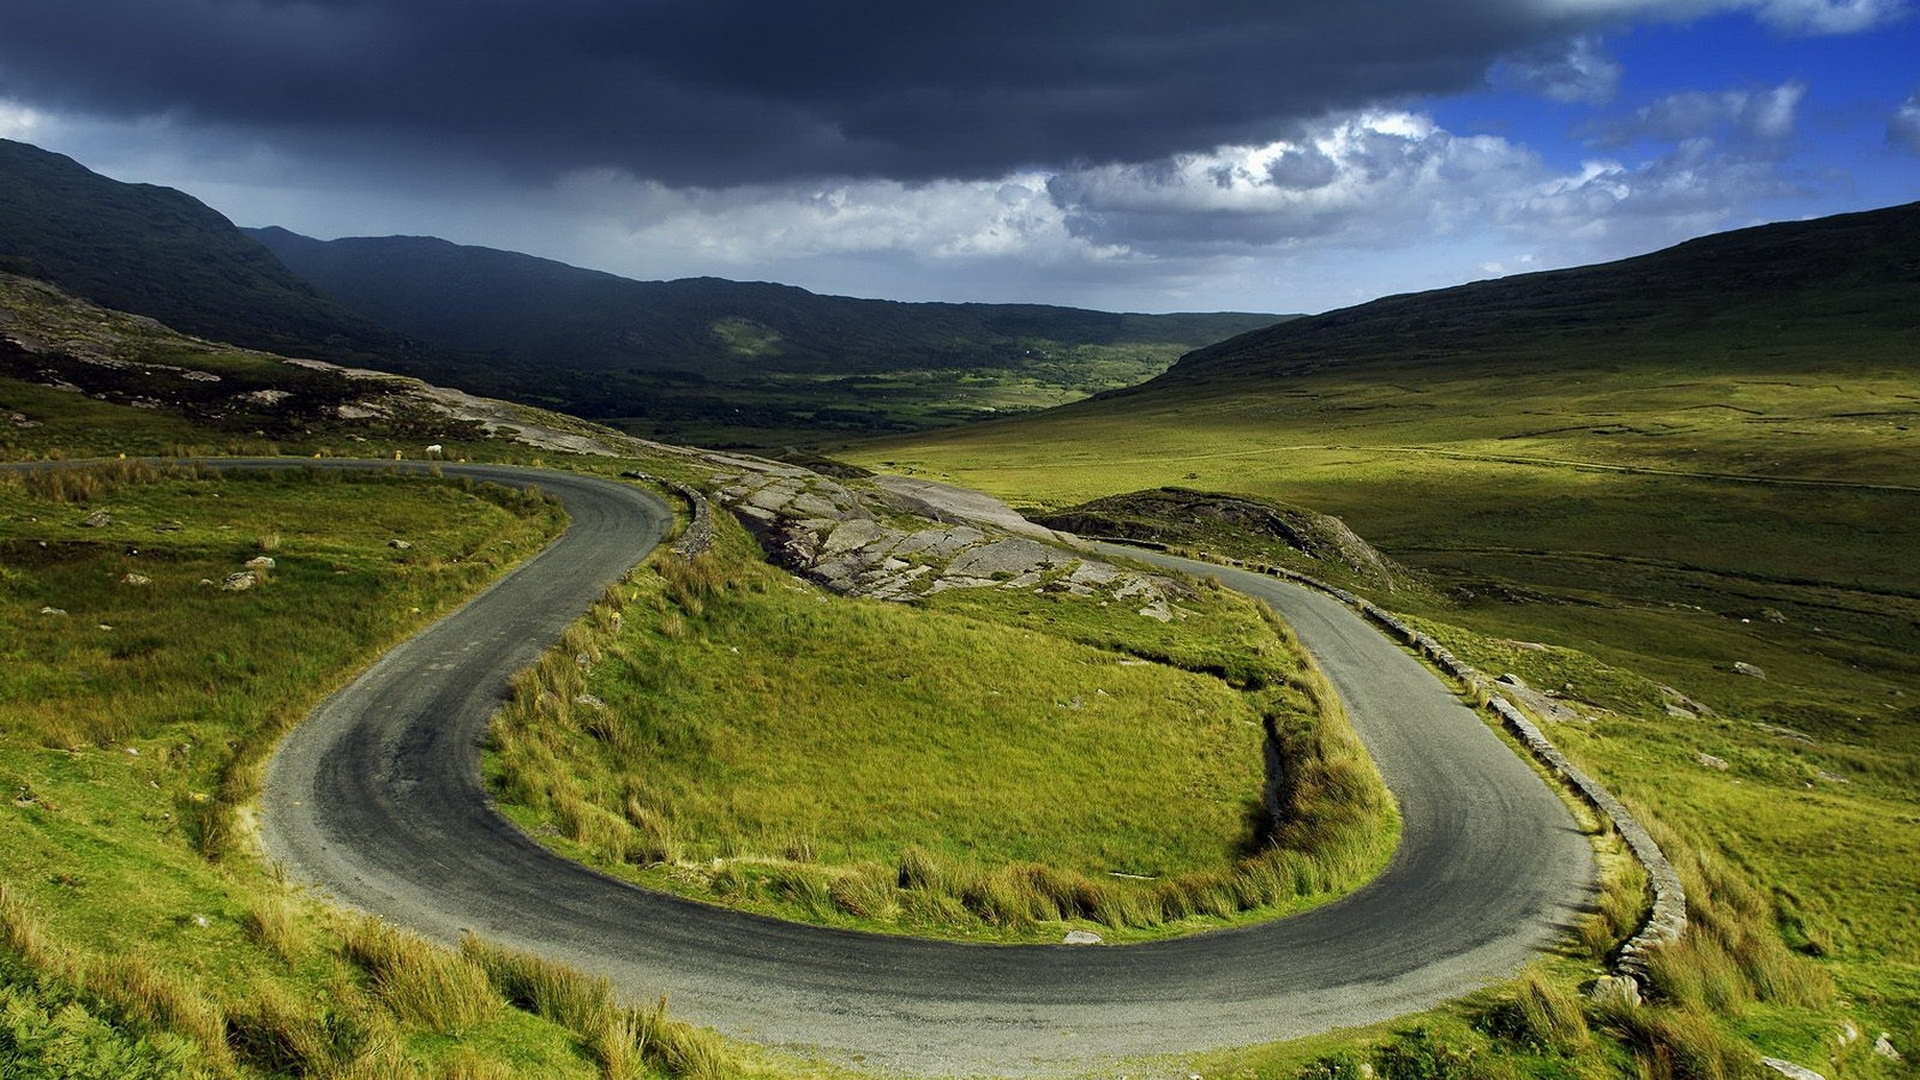 1920x1080 Curvy Mountain Road Nature Desktop PC And Mac Wallpaper